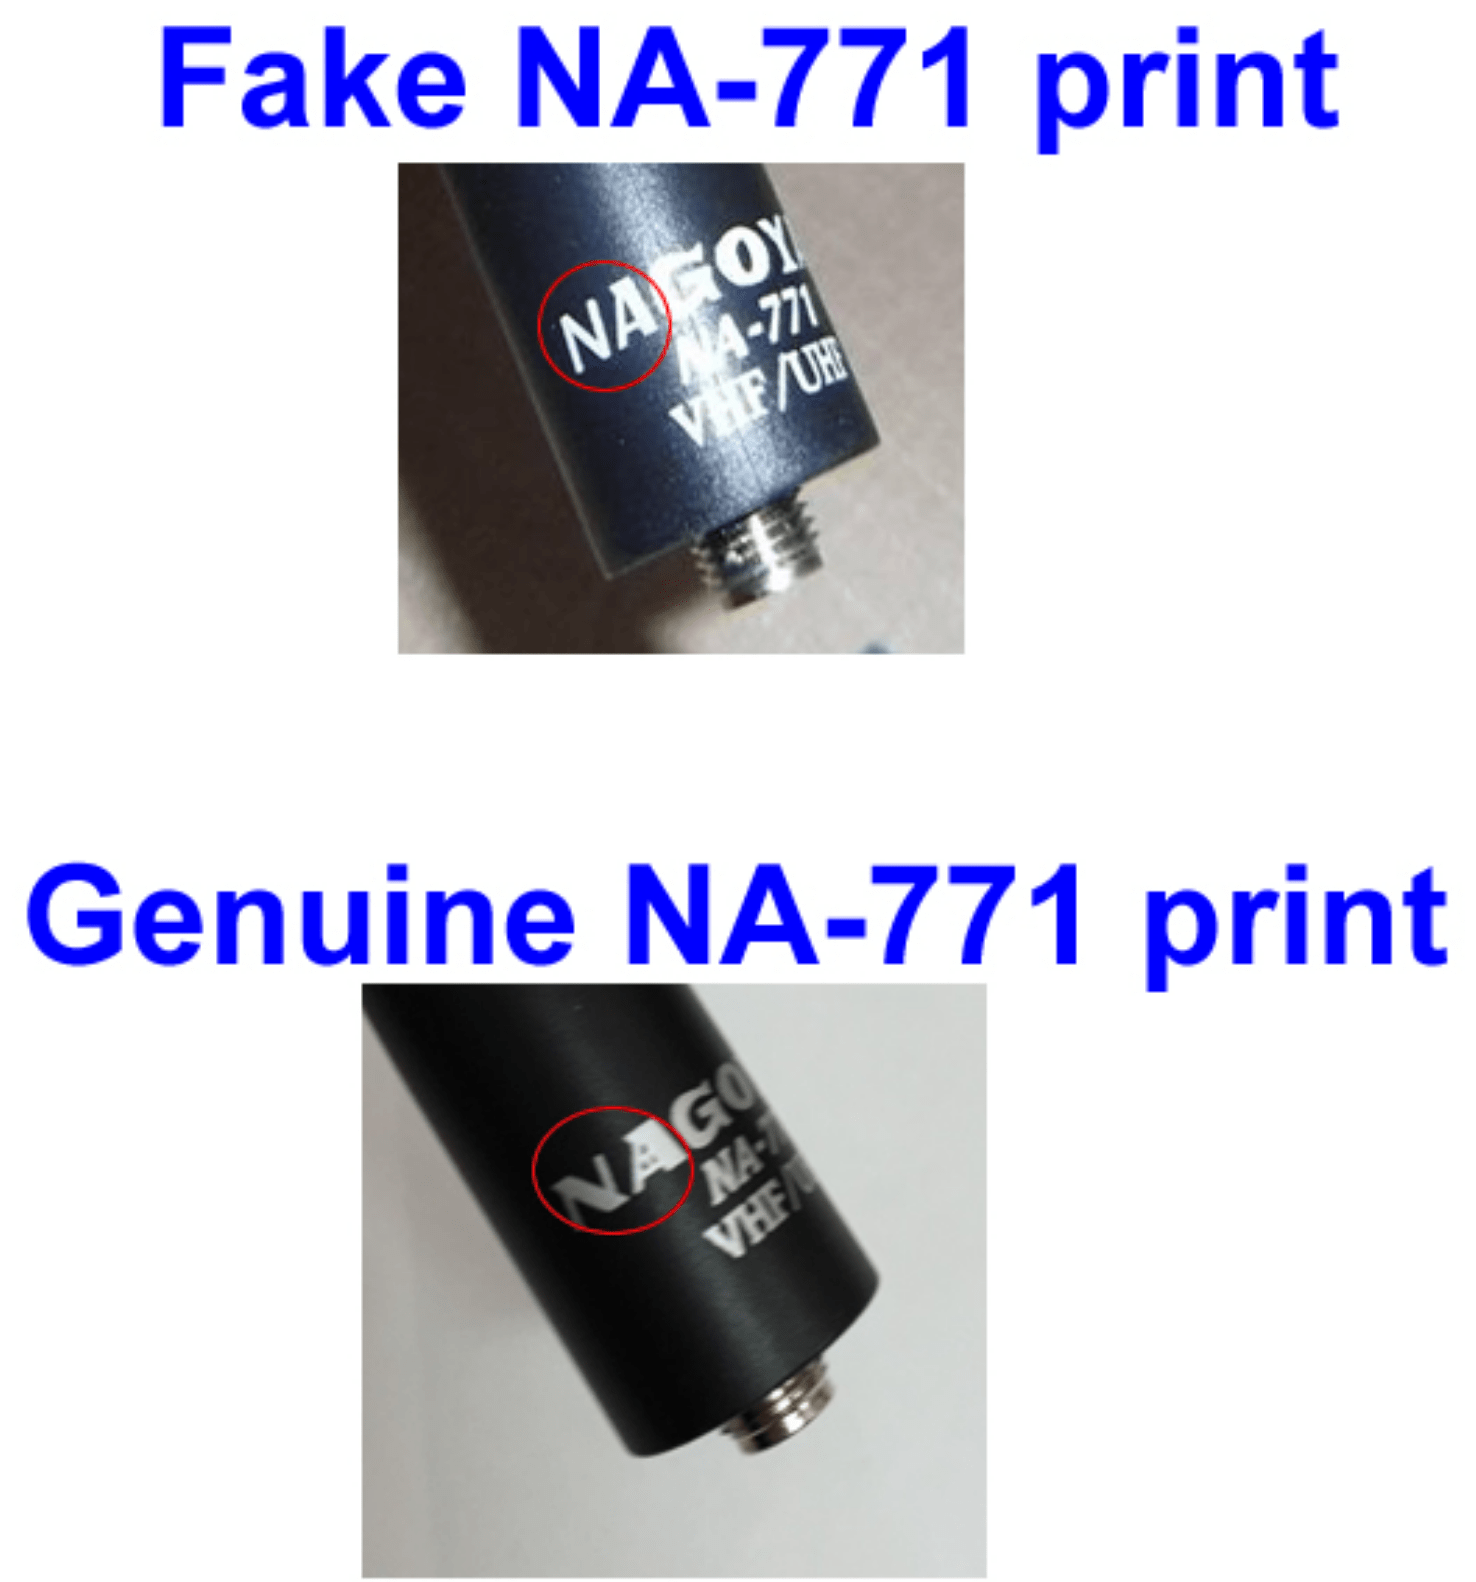 ... I'd have to say that my NA-771 is a counterfeit antenna. See the images  below for an illustration of the authentic and counterfeit lettering.